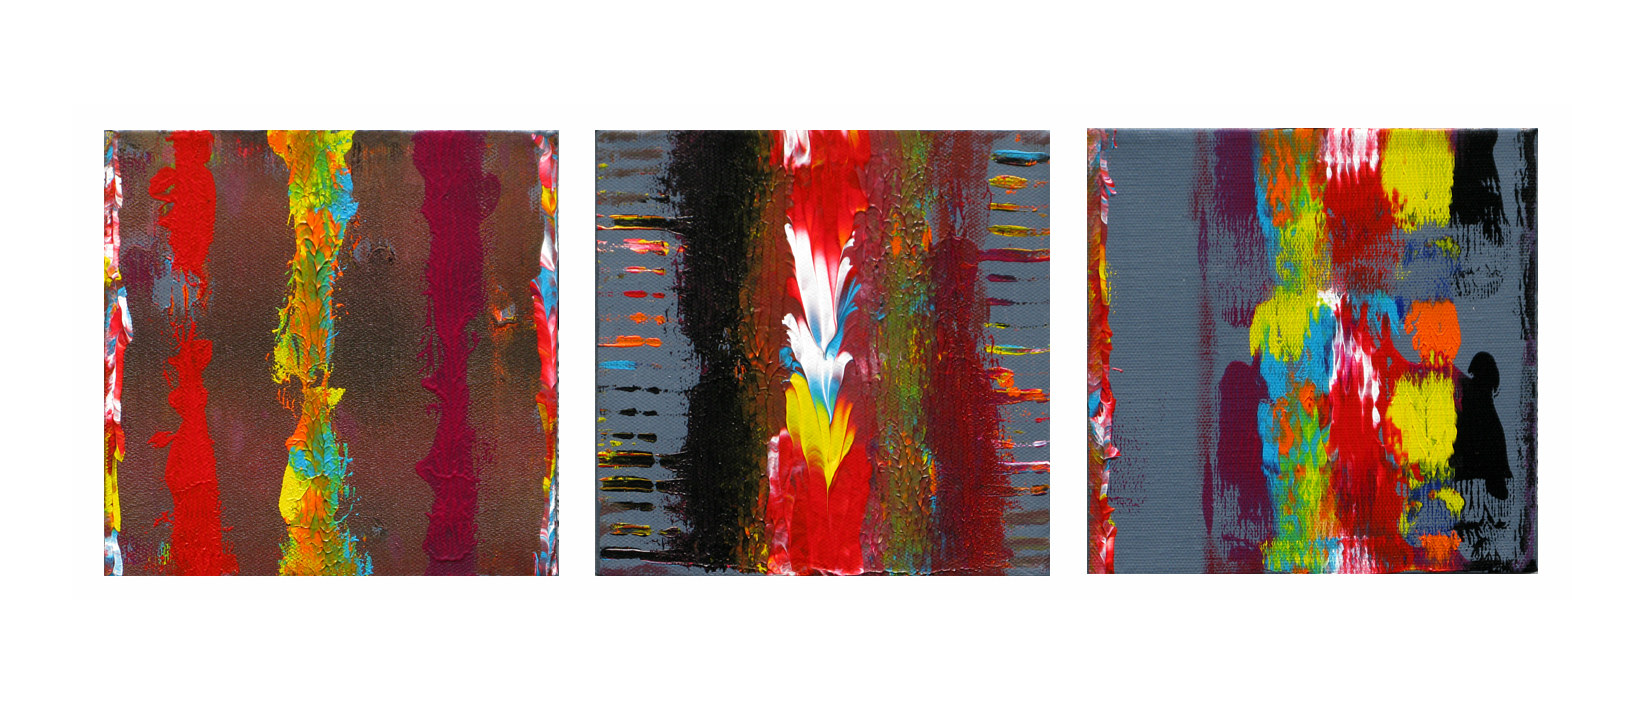 Acrylic painting Unchained Harmony, 6x6 inches each by Hooshang Khorasani